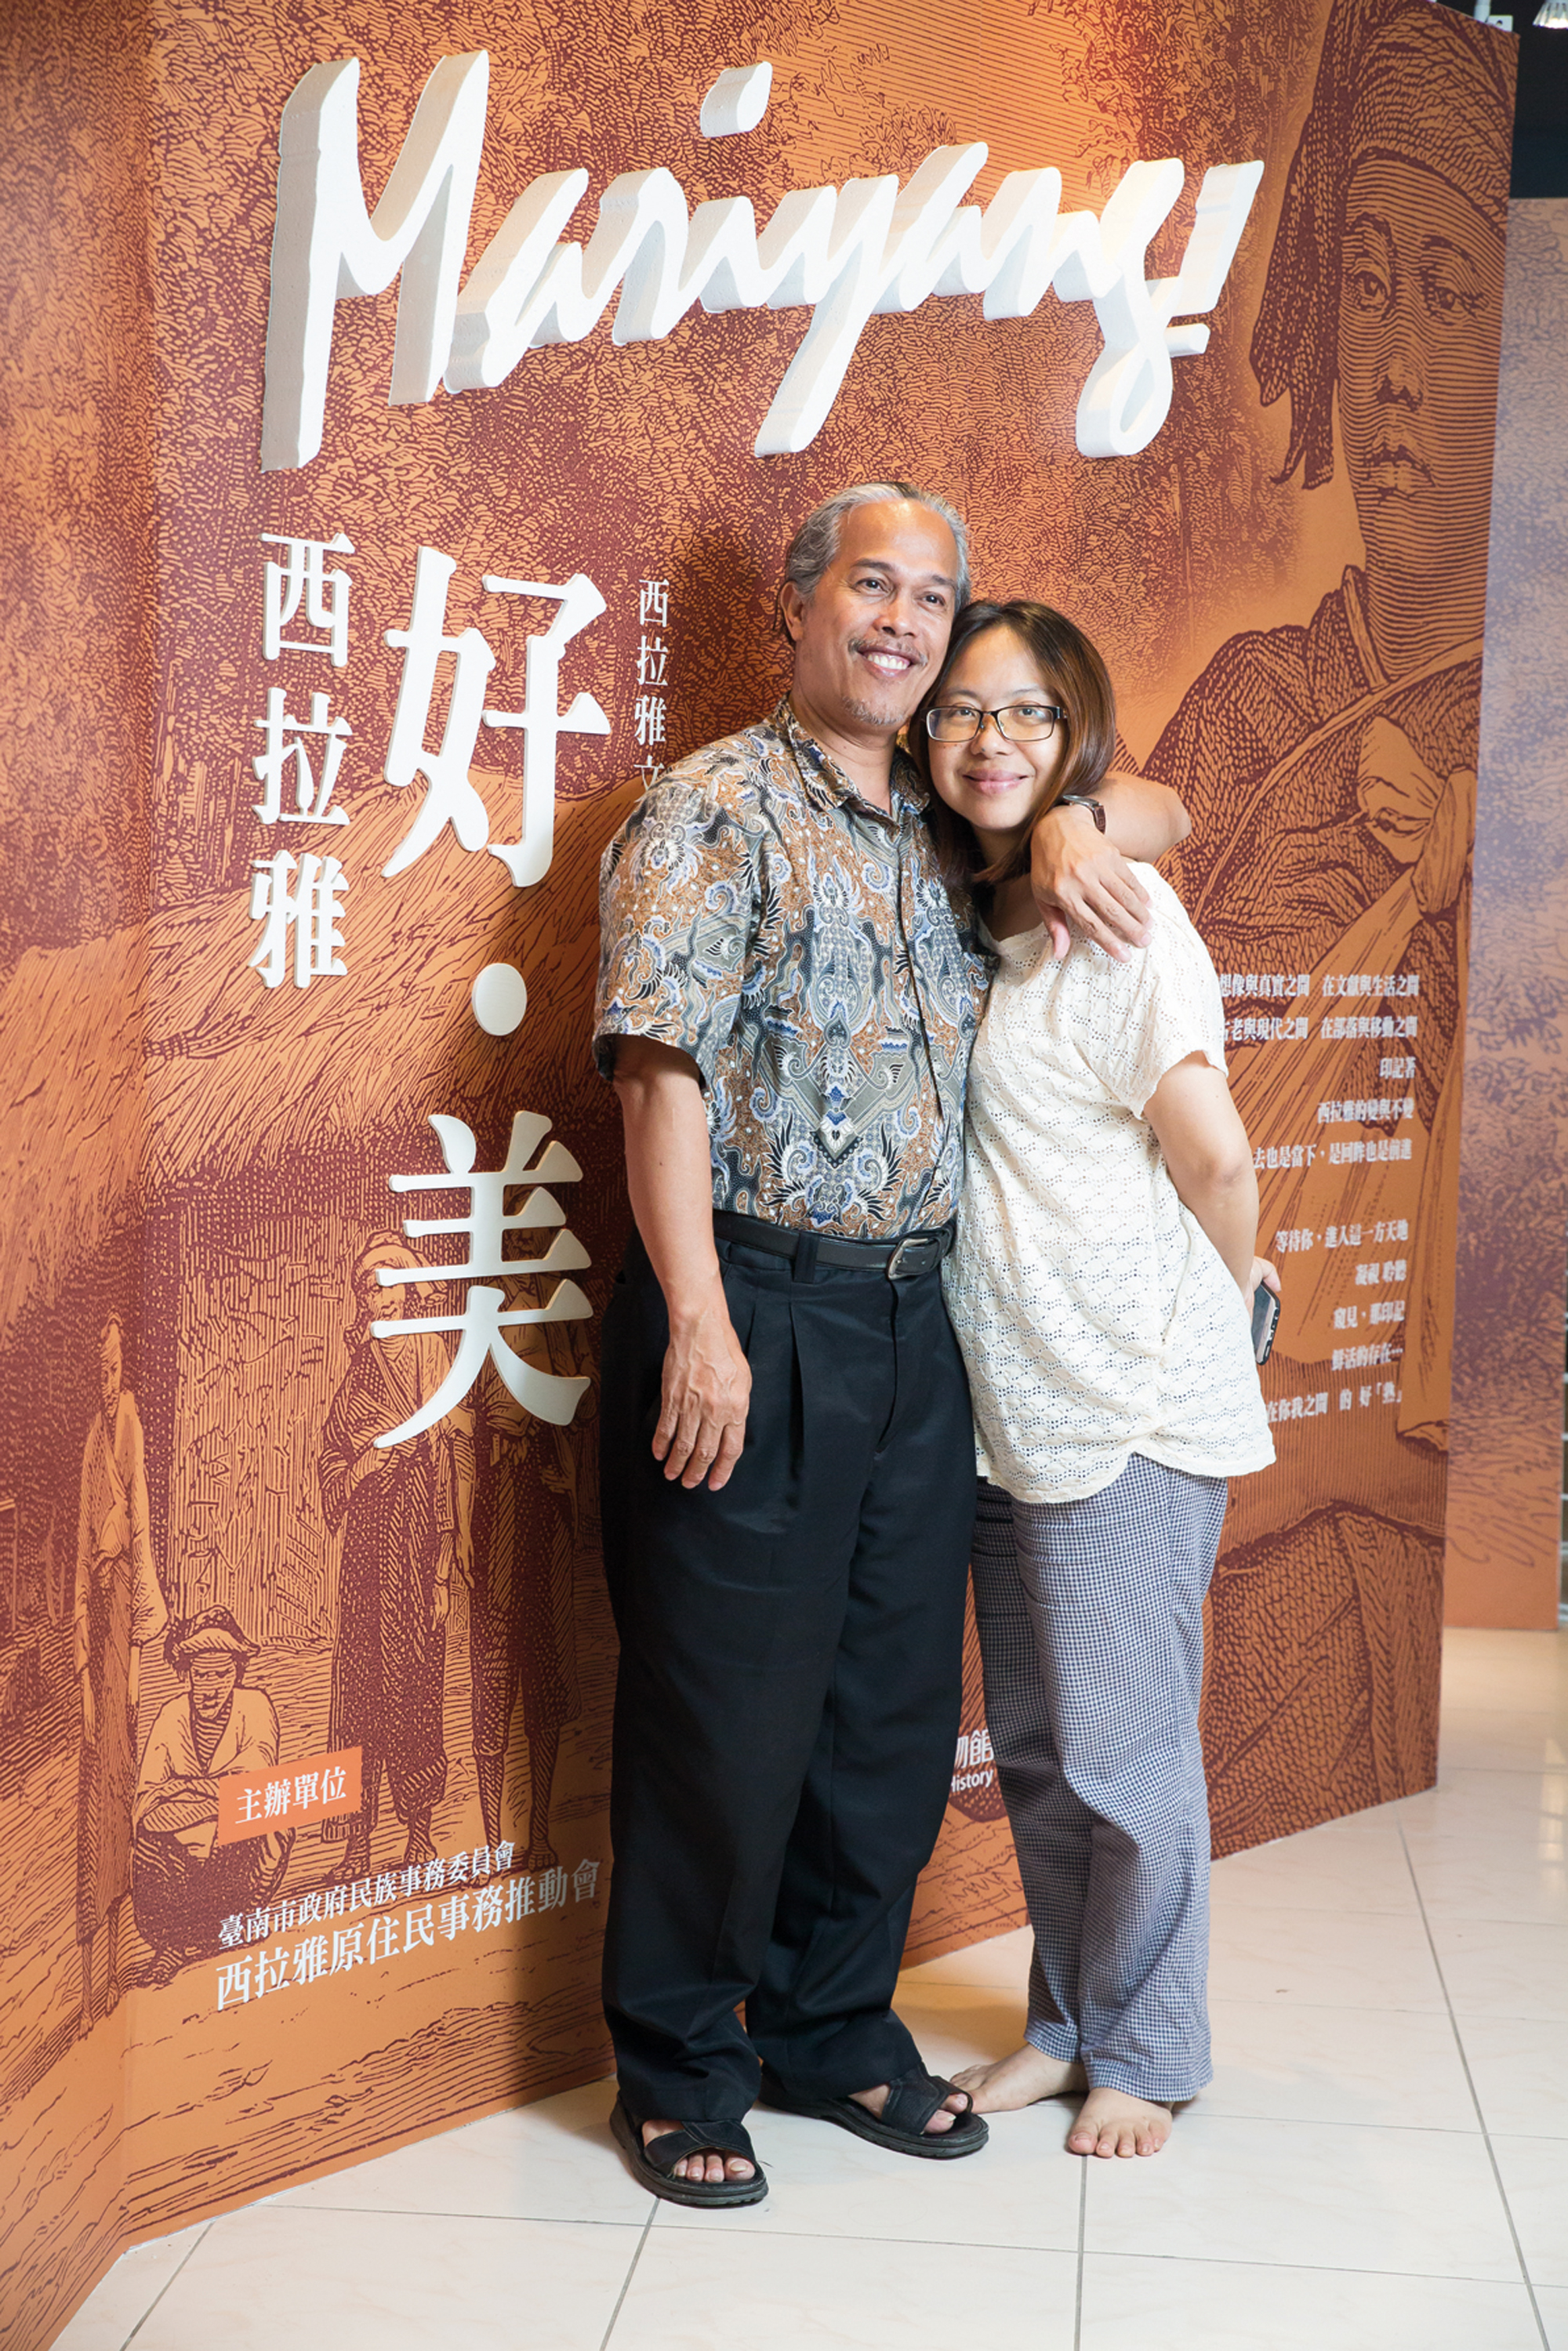 Partners in a transnational marriage, Uma Talavan and Edgar L. Macapili have become important promoters of the revival of the Sirayan language.